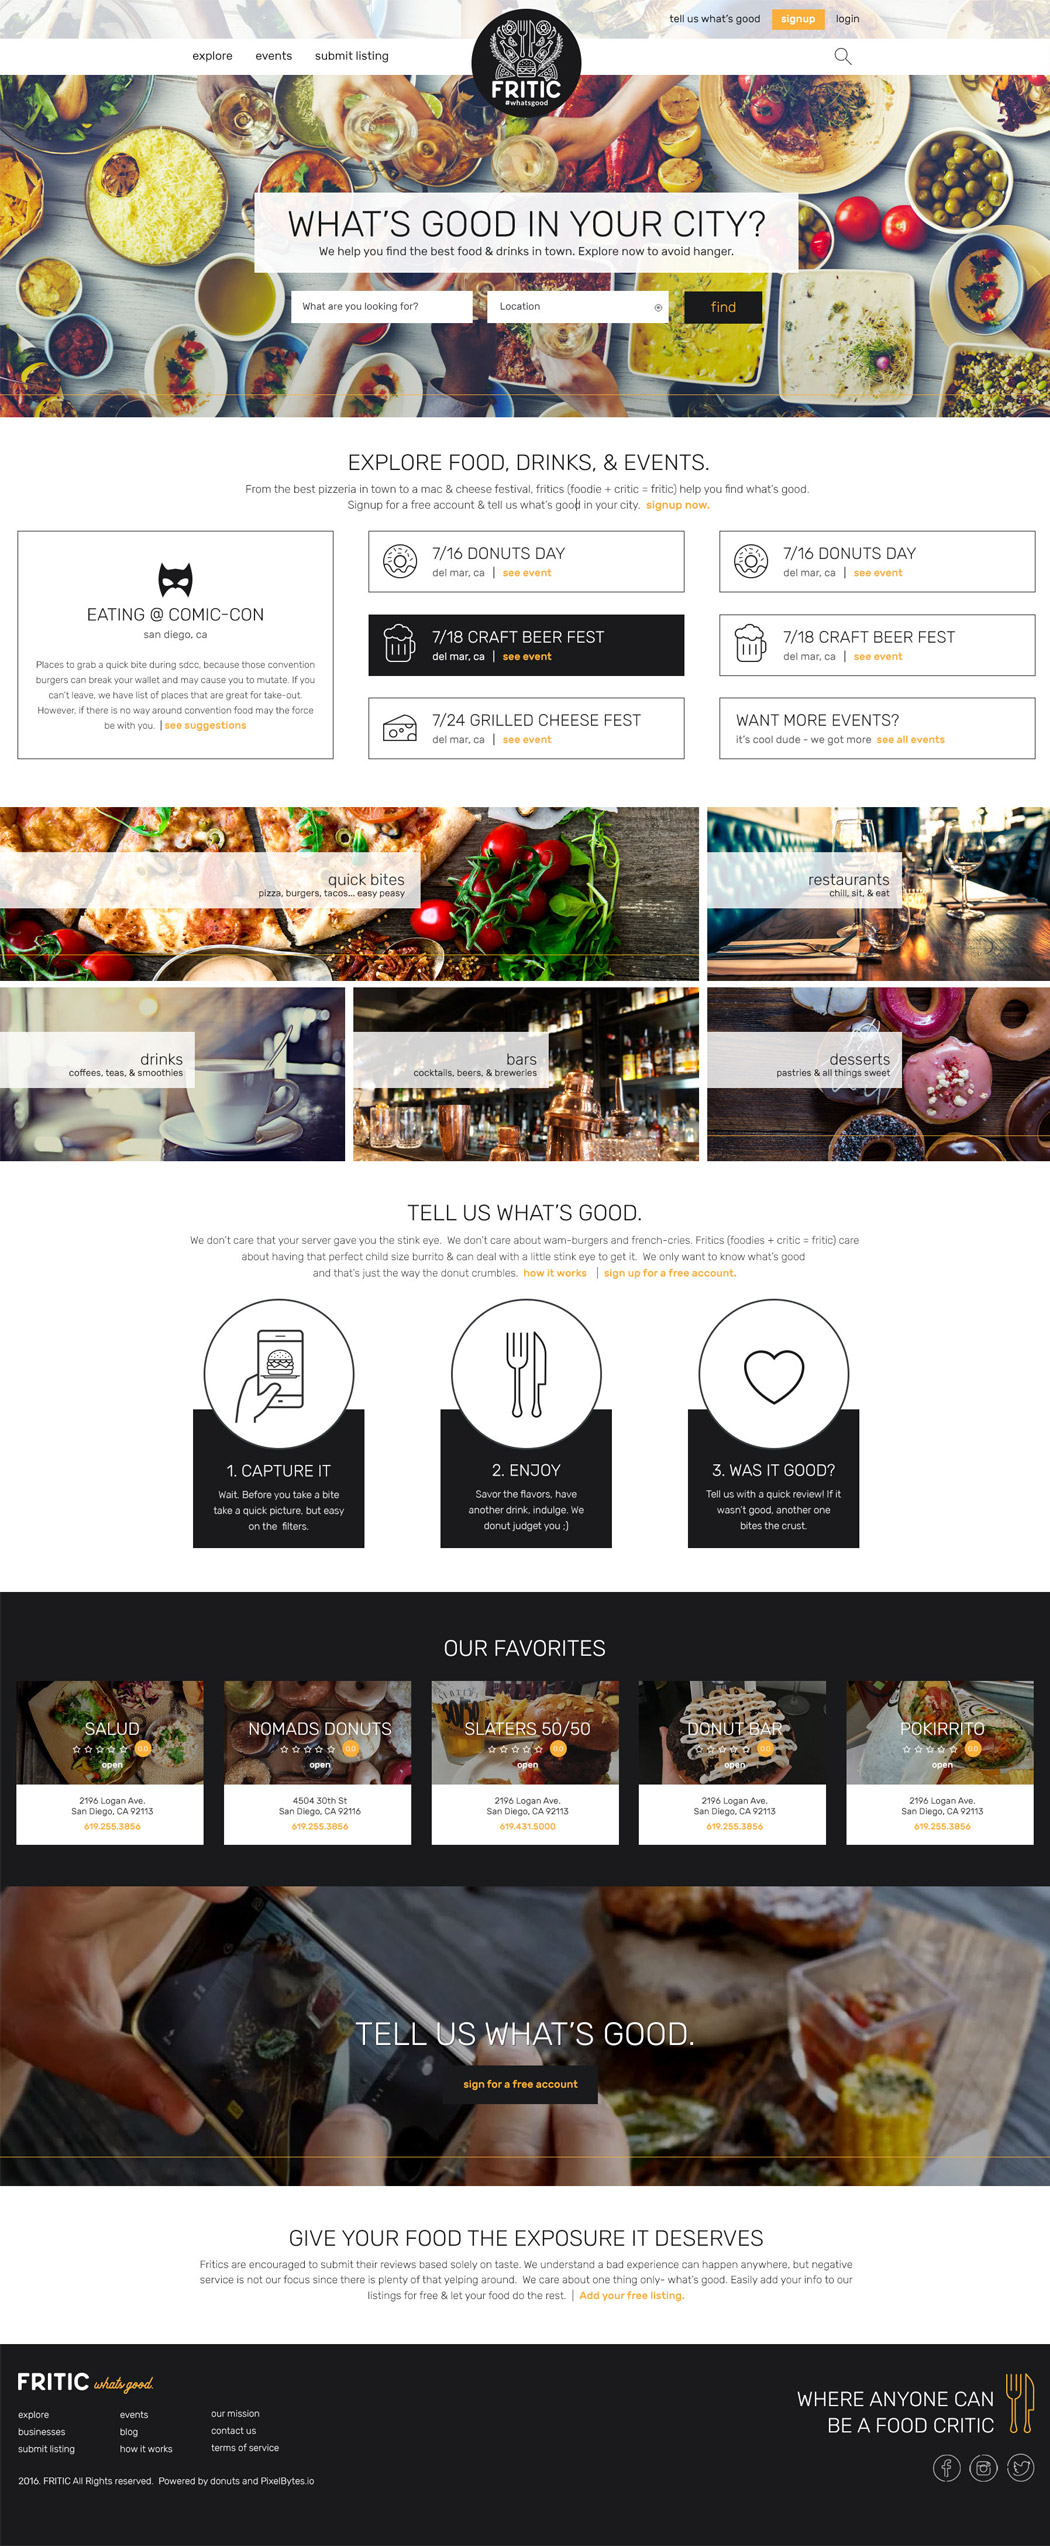 San Diego Website Design - Fritic